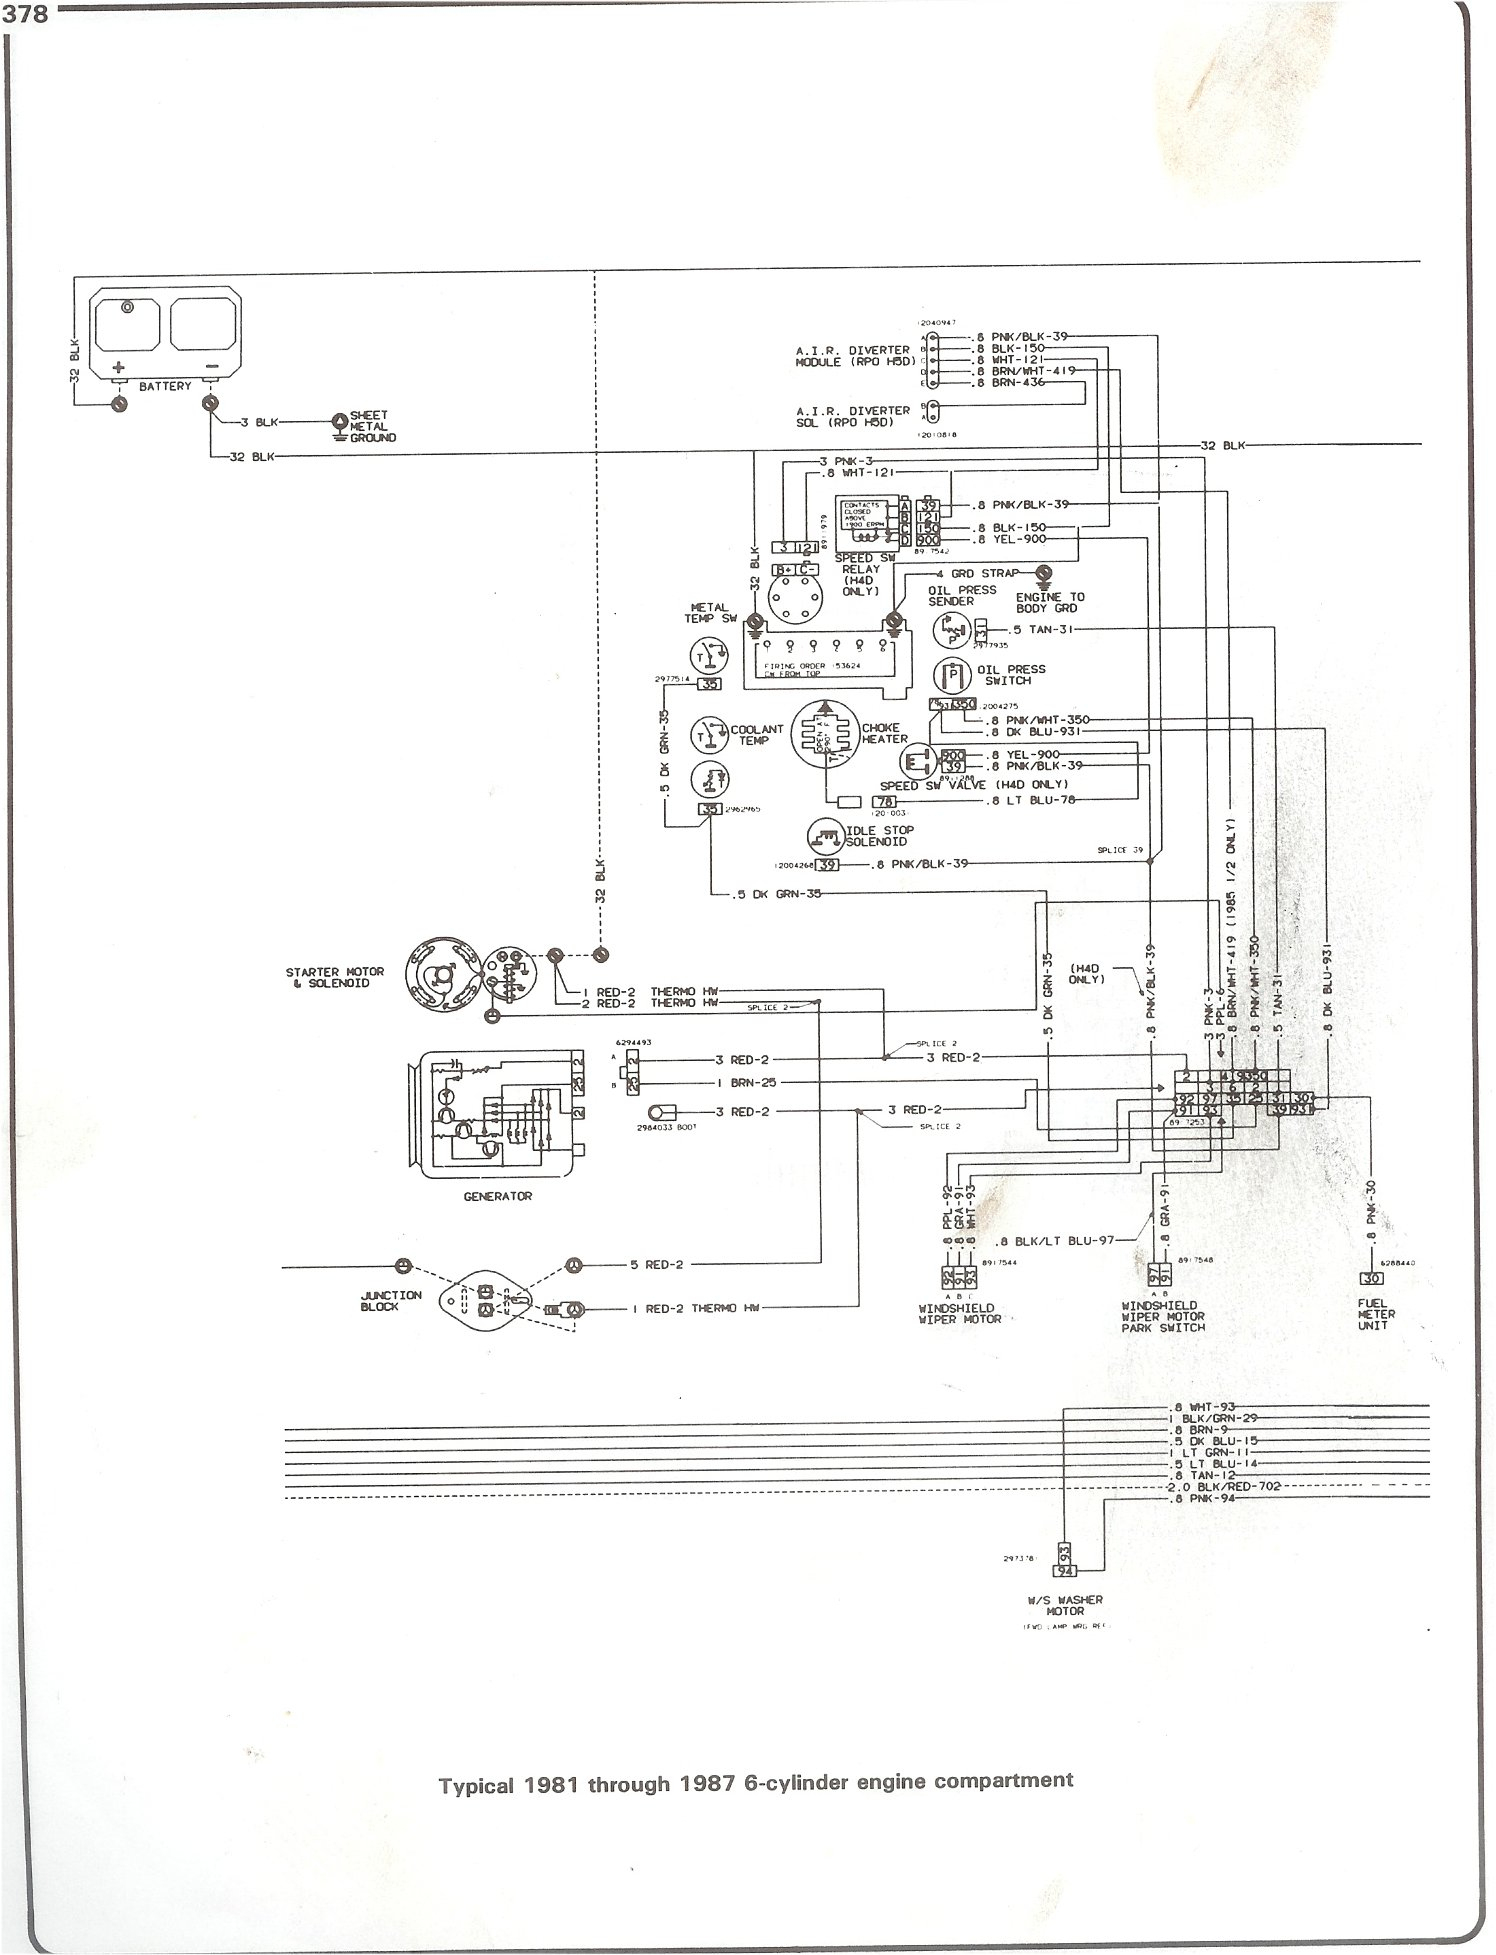 Complete 73-87 Wiring Diagrams - Ignition Wiring Diagram Chevy 350